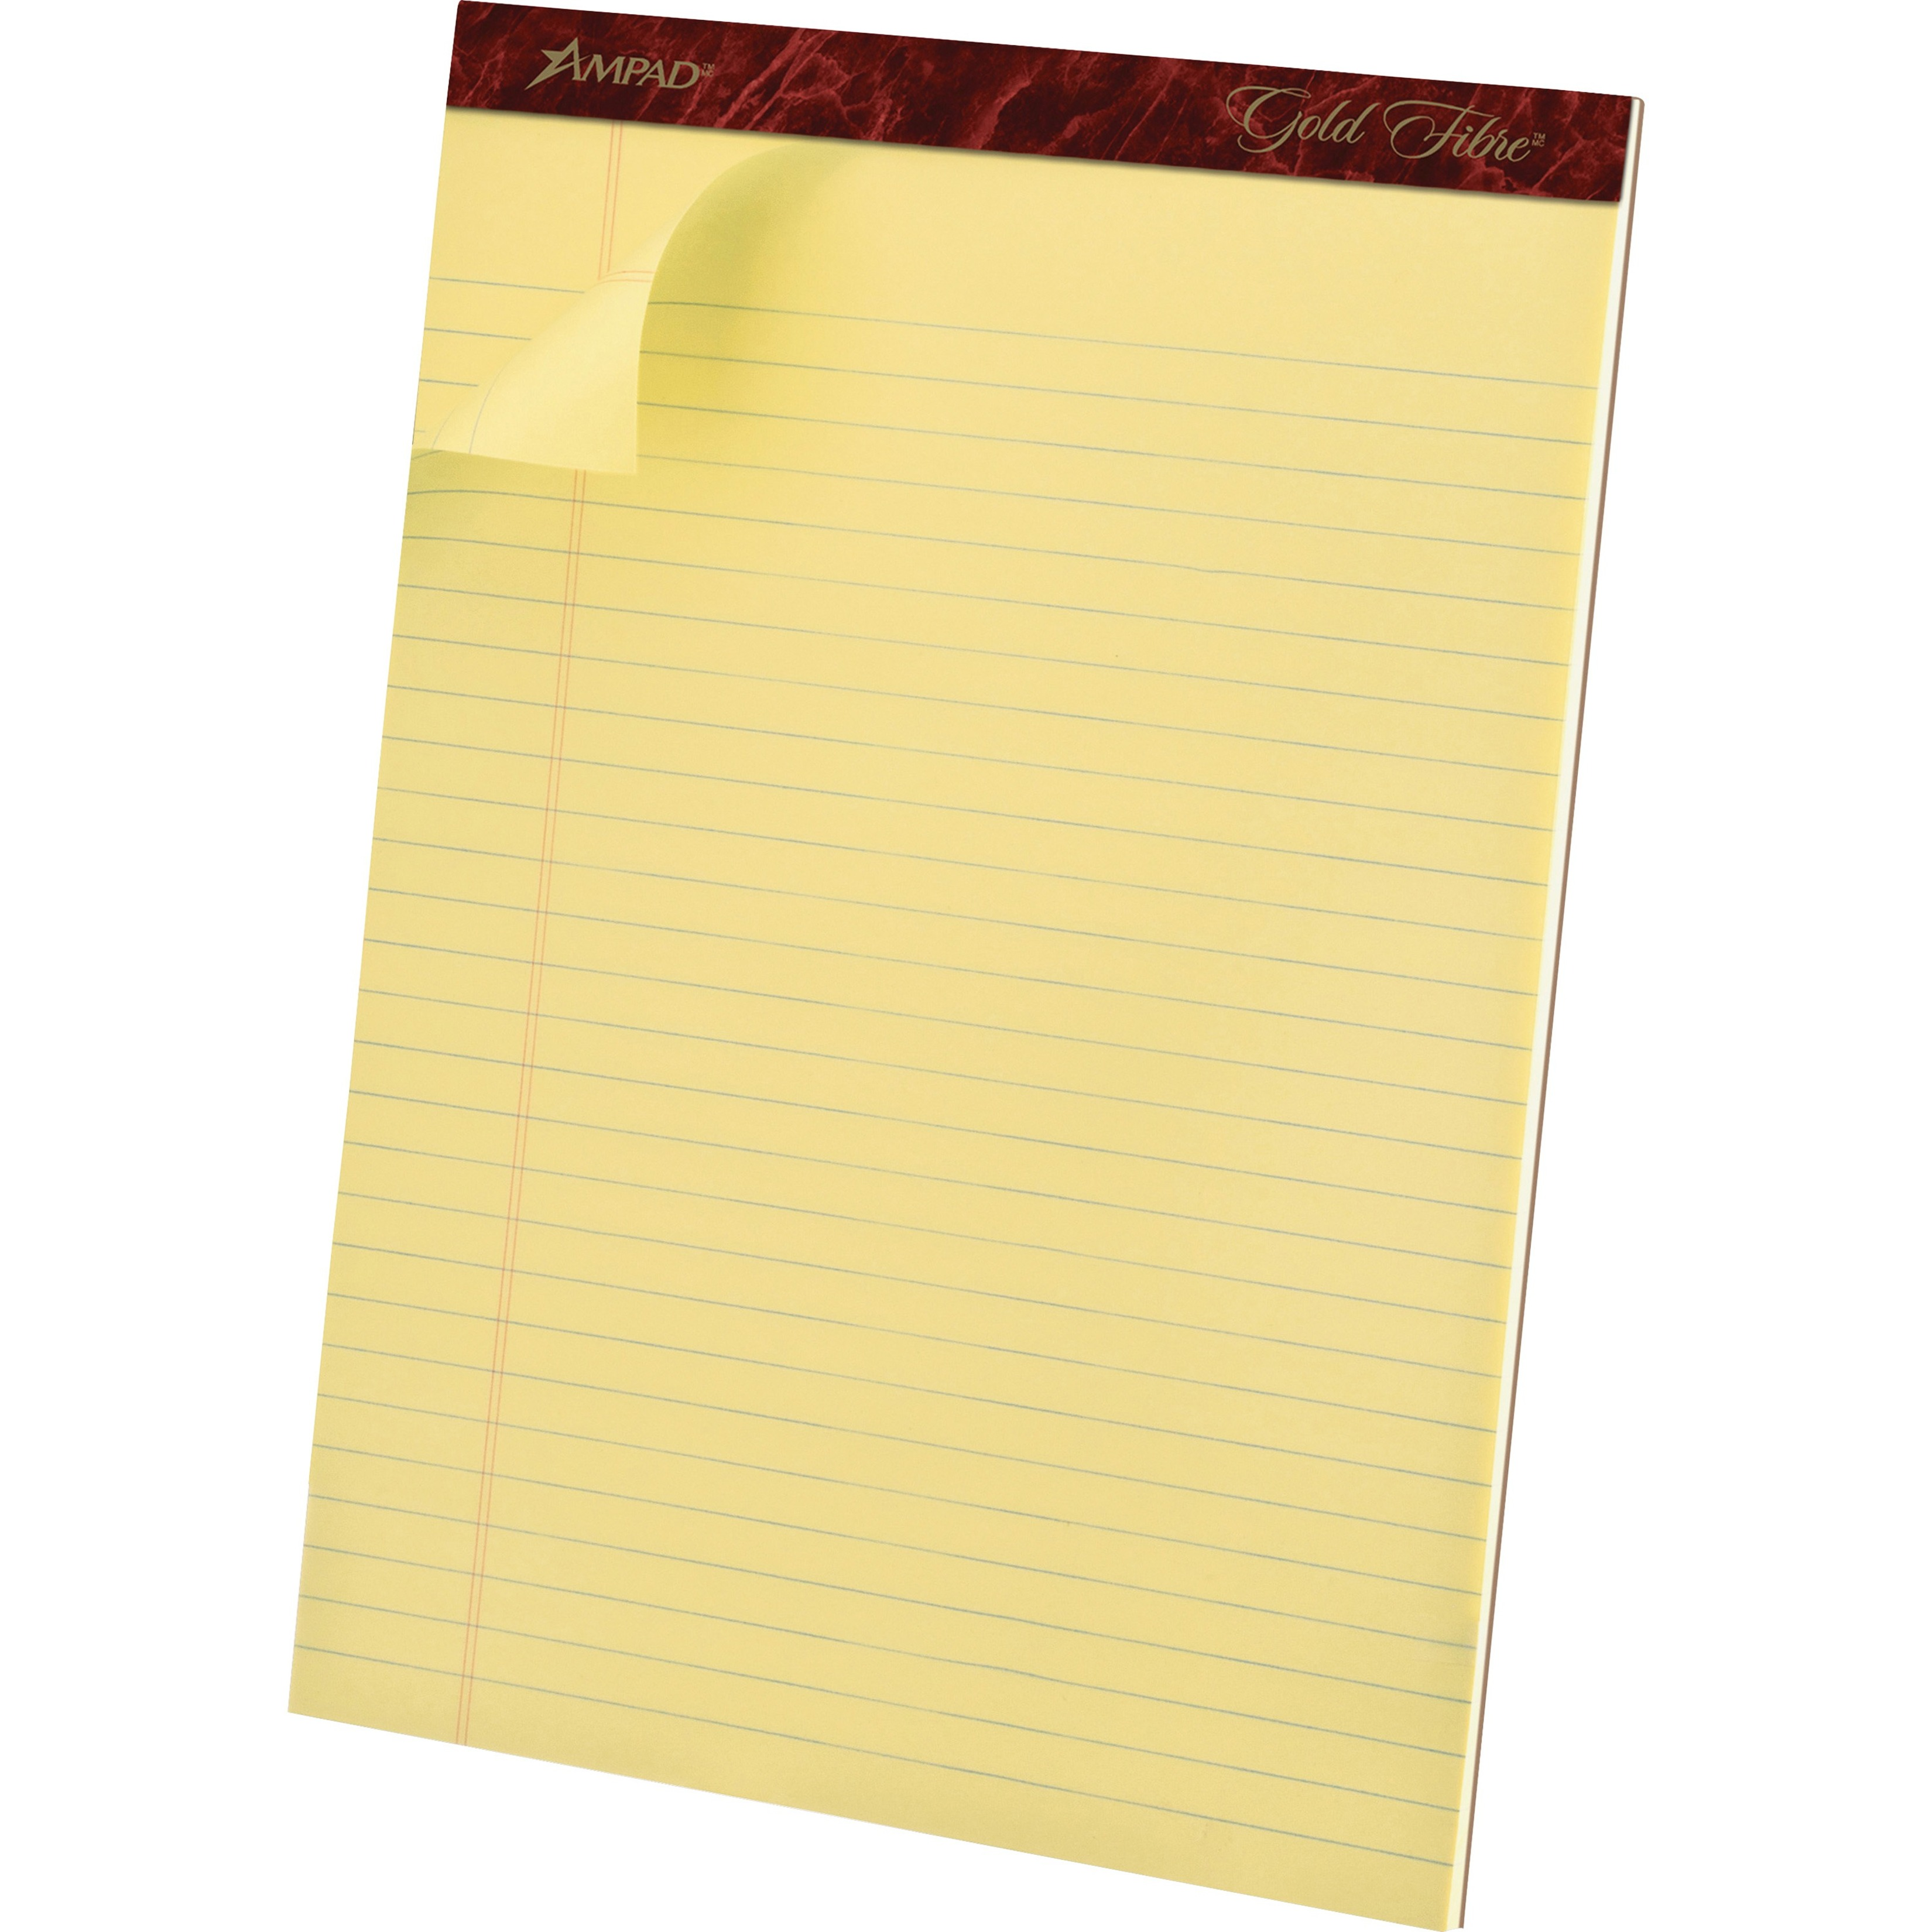 Gold Fibre Ruled Pad, 8 1/2 x 11 3/4, Canary, 50 Sheets, Dozen